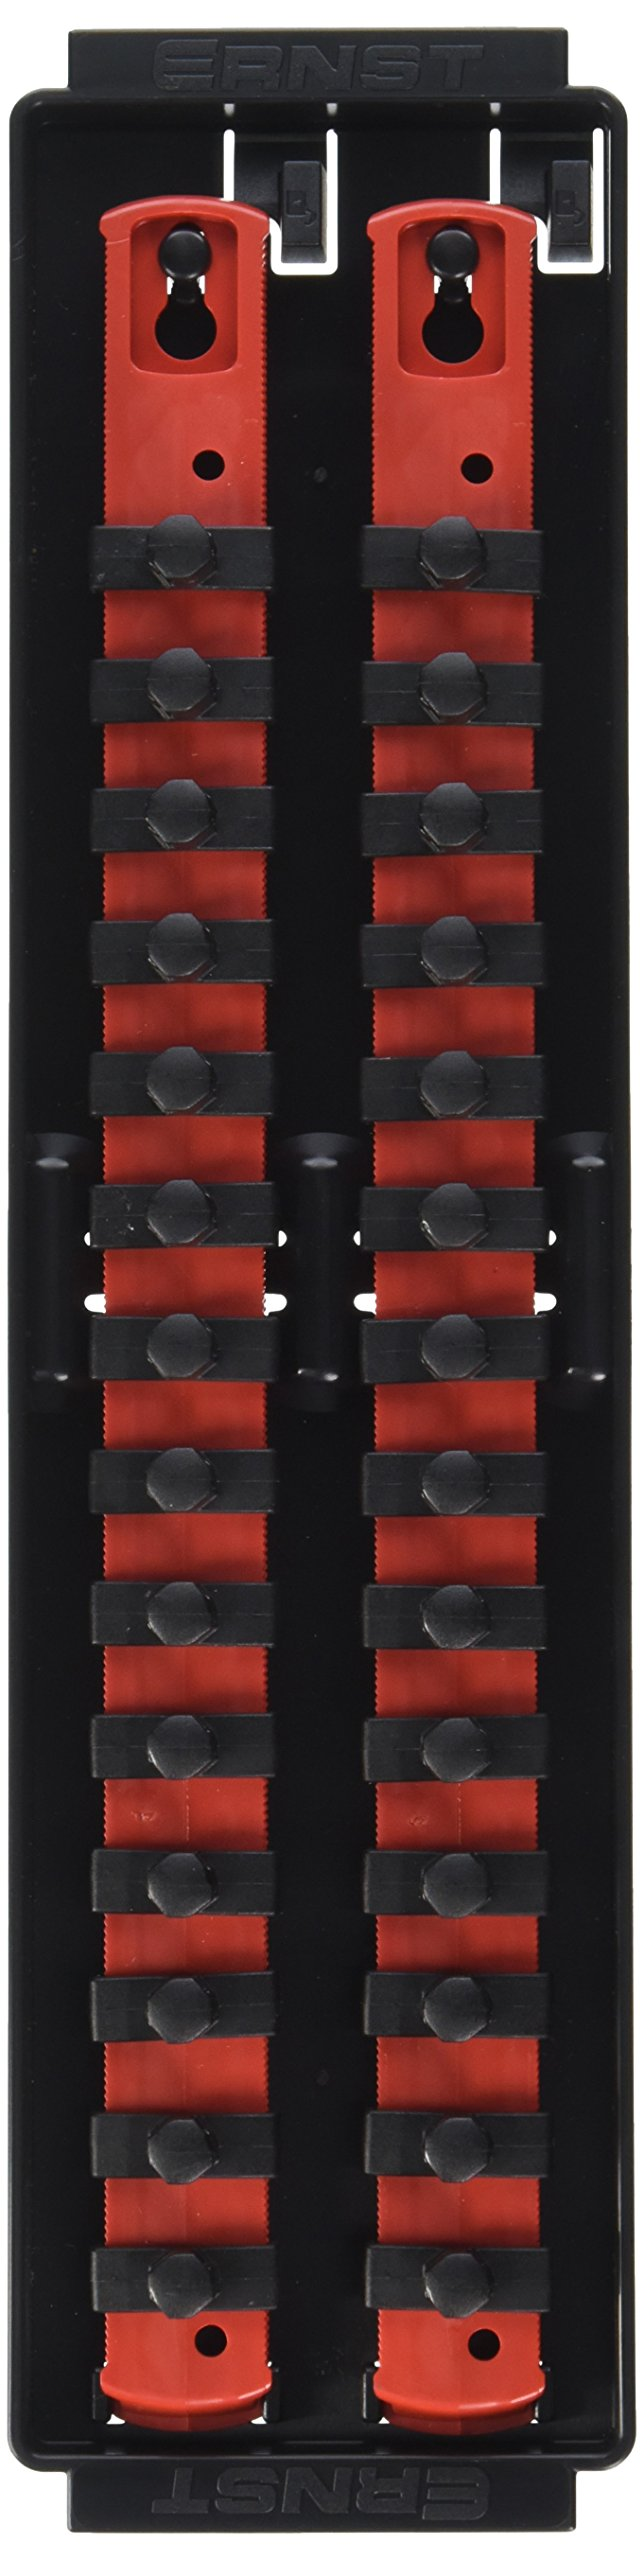 Ernst Manufacturing Socket Boss 2-Rail 3/8-Inch-Drive Socket Organizer, 13-Inch, Red